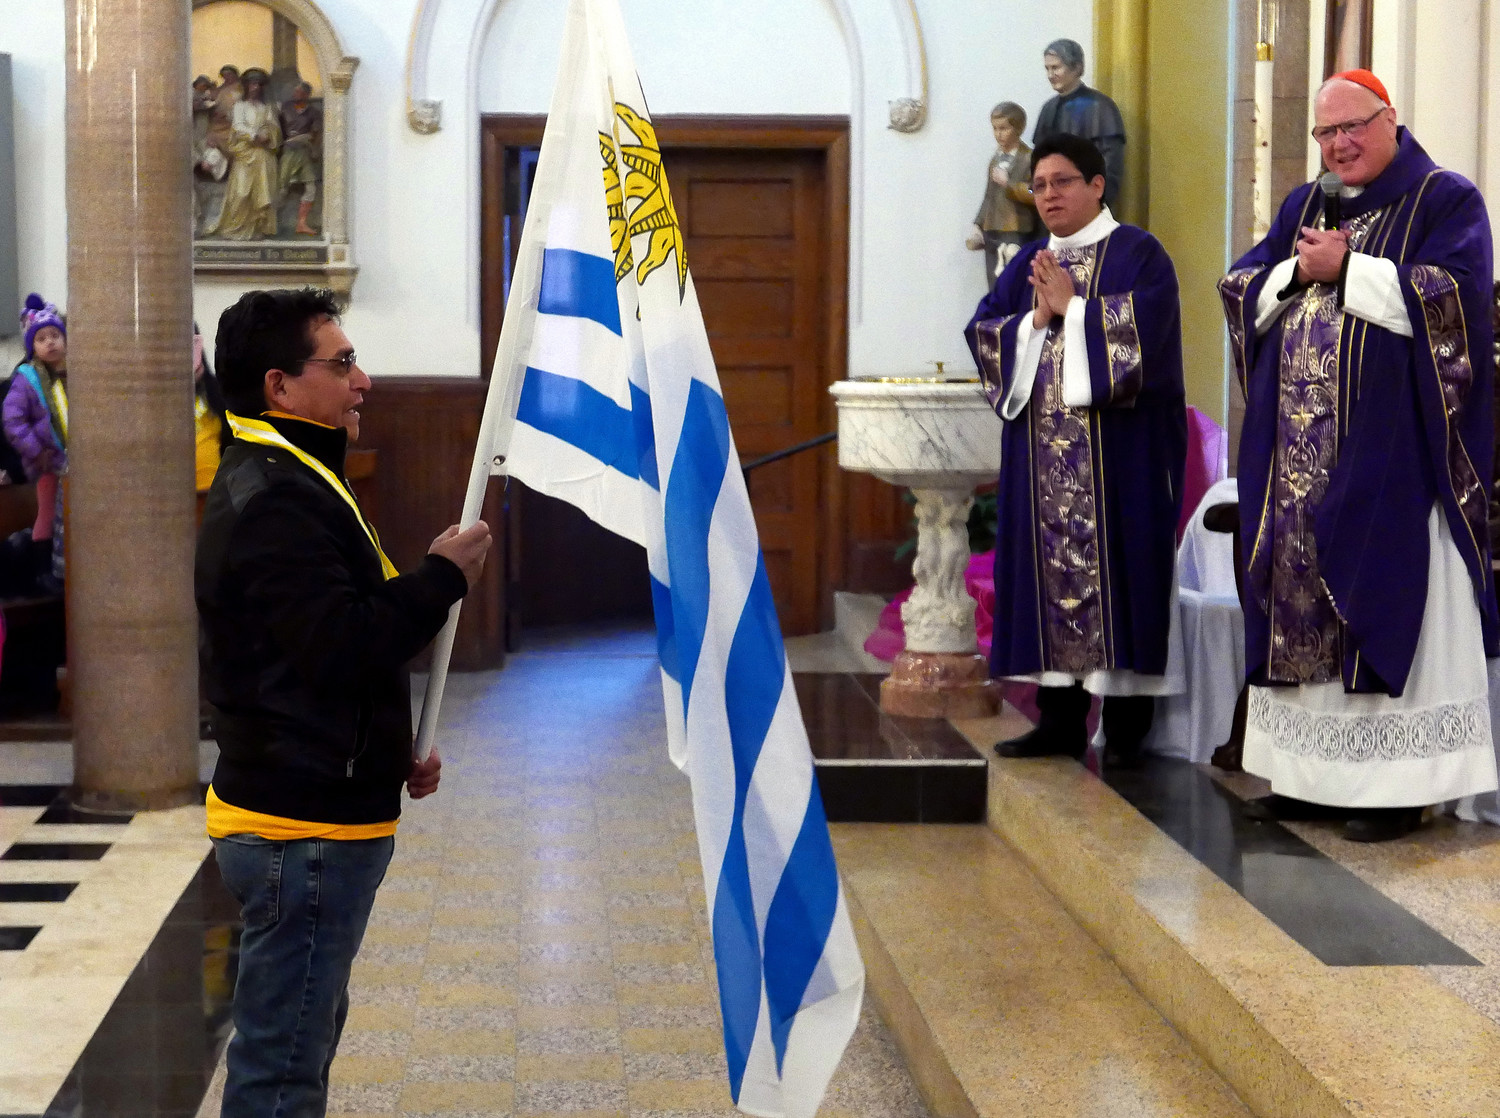 A flag is carried to the main altar.